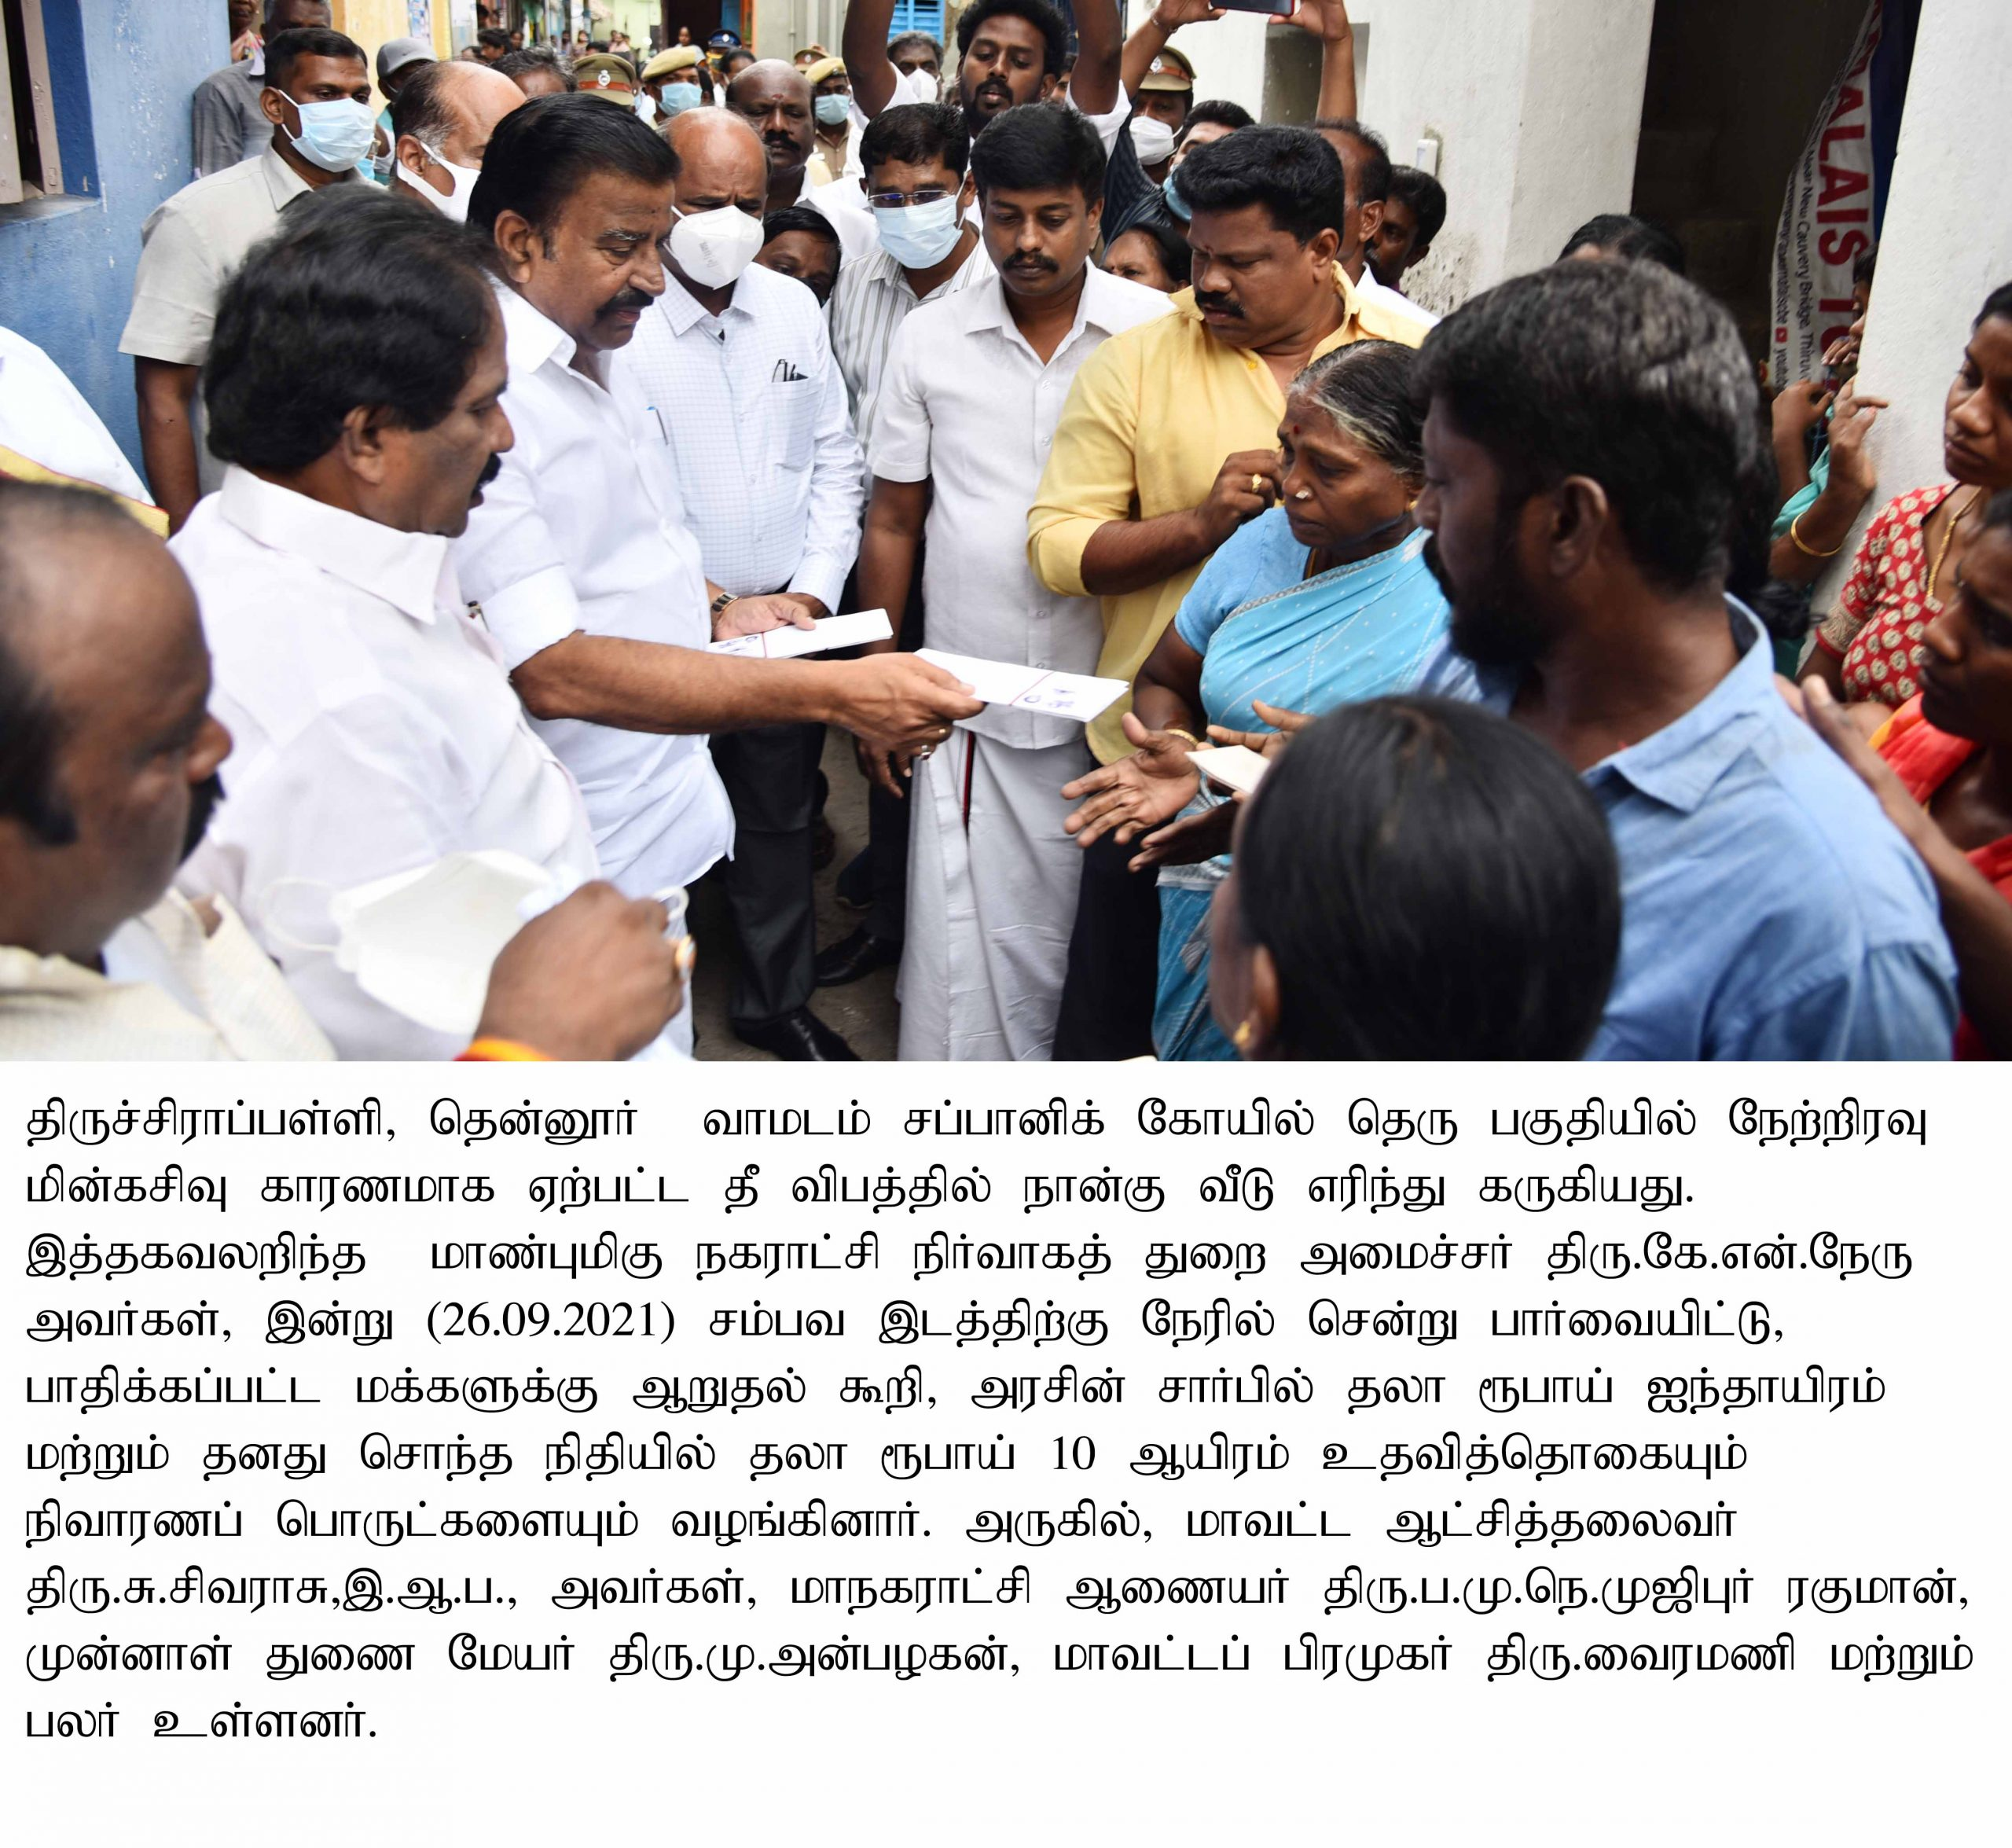 Hon'ble Municipal Administration Minister Provided Fire Accidents Relief Amount and Items on 26.09.2021